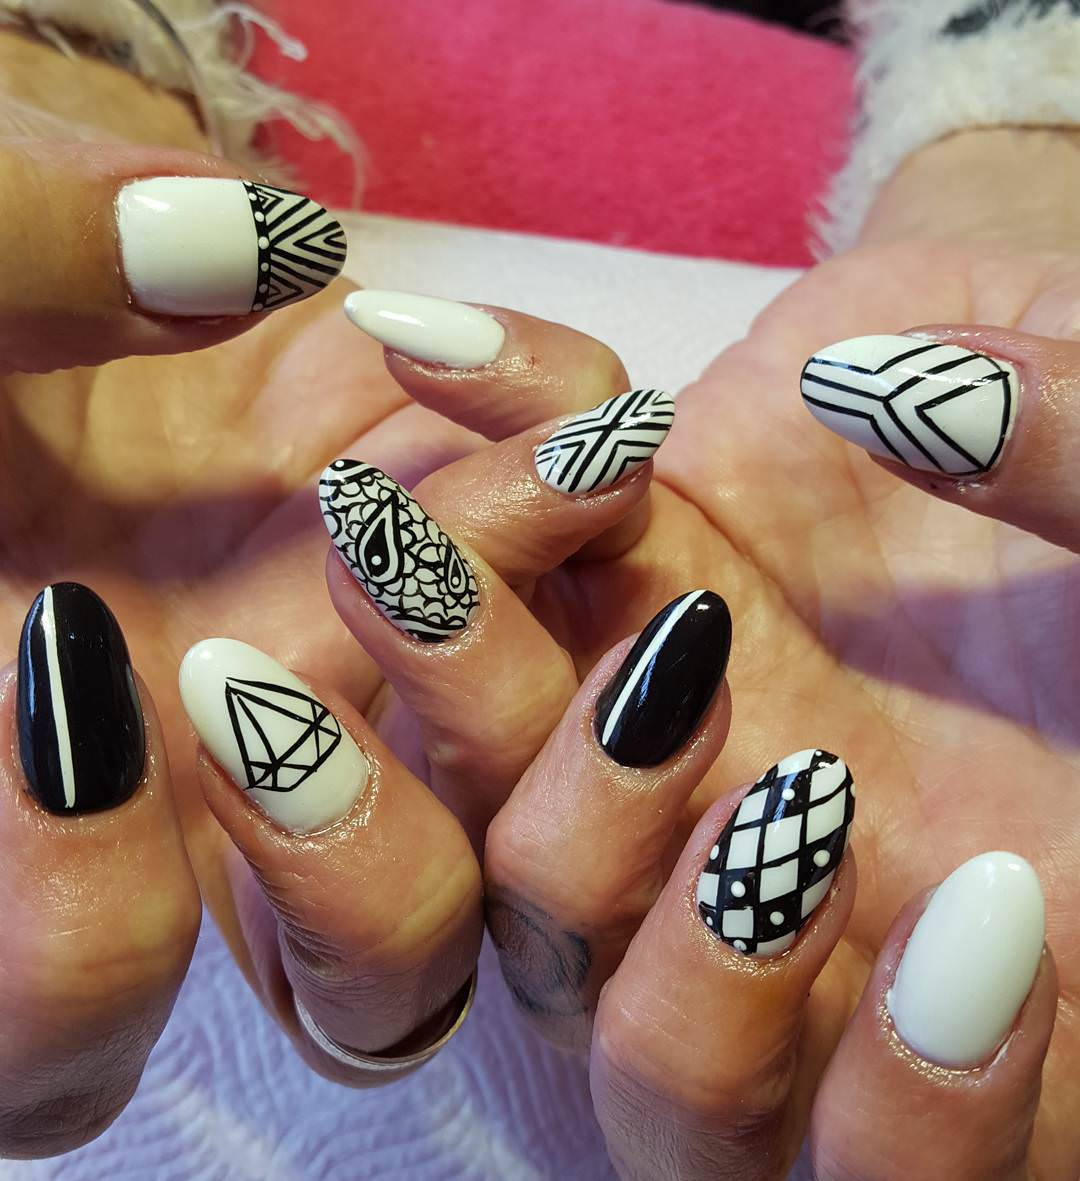 Black and White Pattern Nail Art - 29+ Oval Nail Art Designs, Ideas Design Trends - Premium PSD